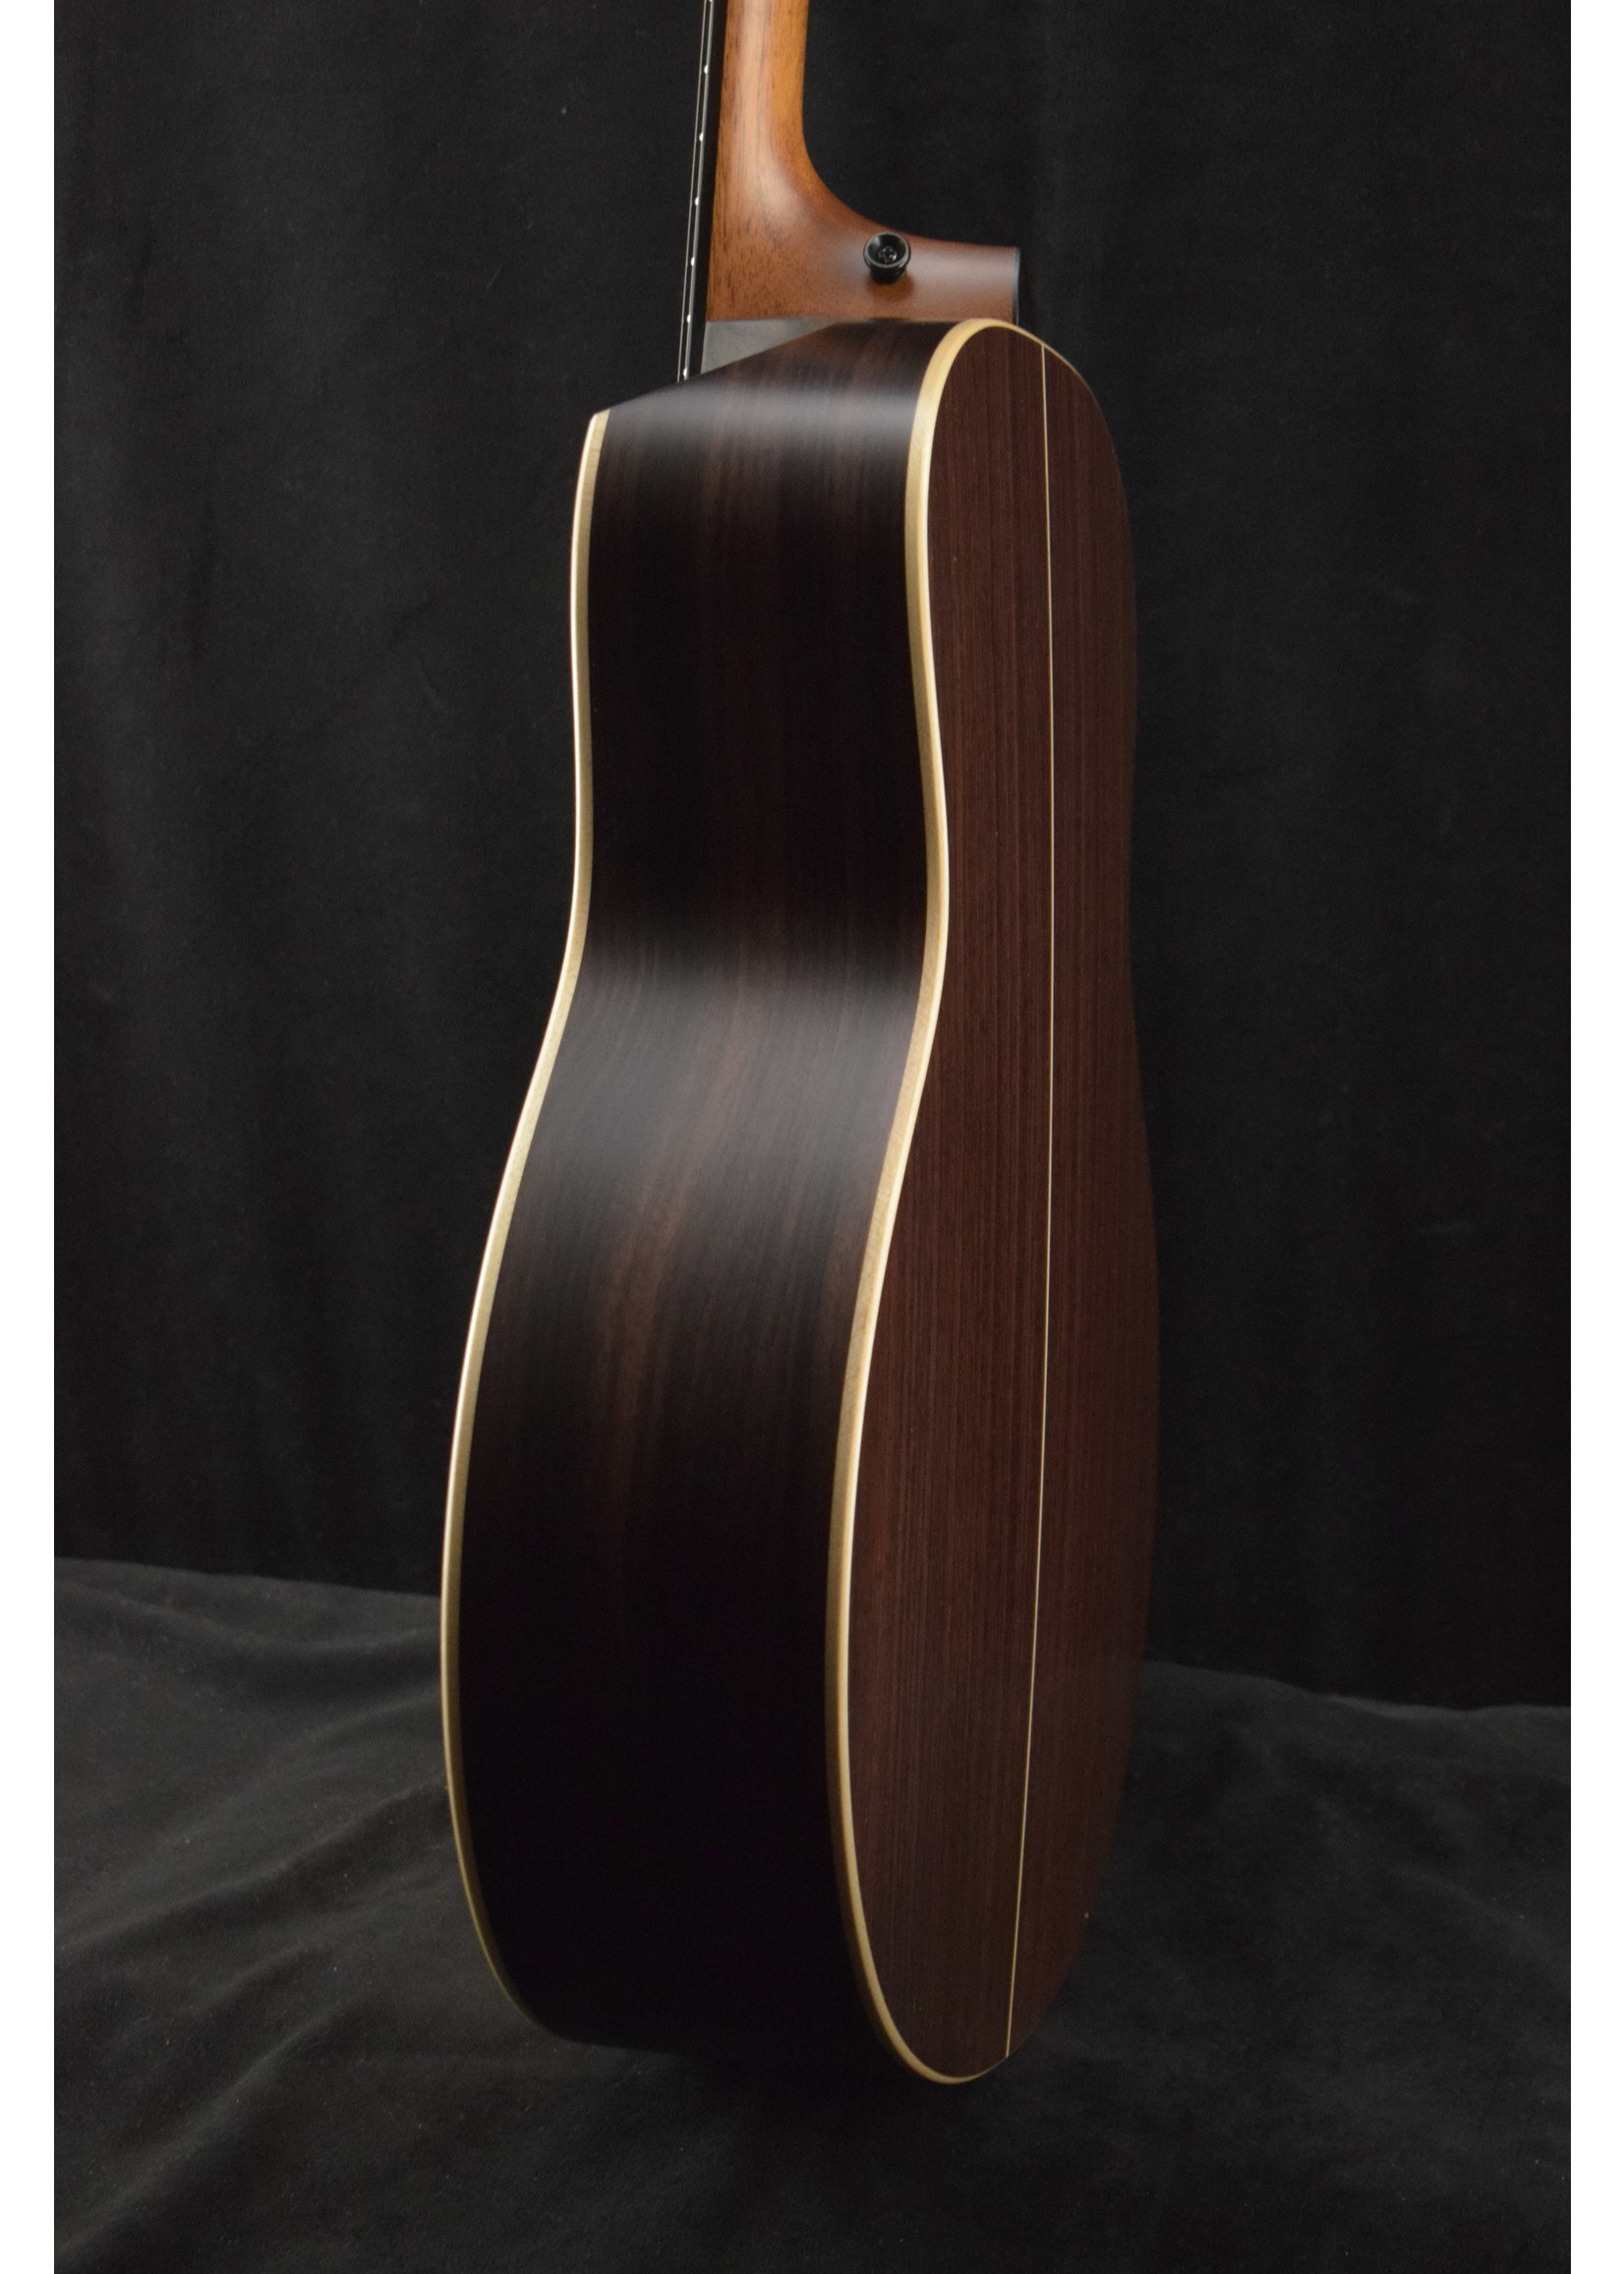 Taylor Taylor Builder's Edition 816ce Natural